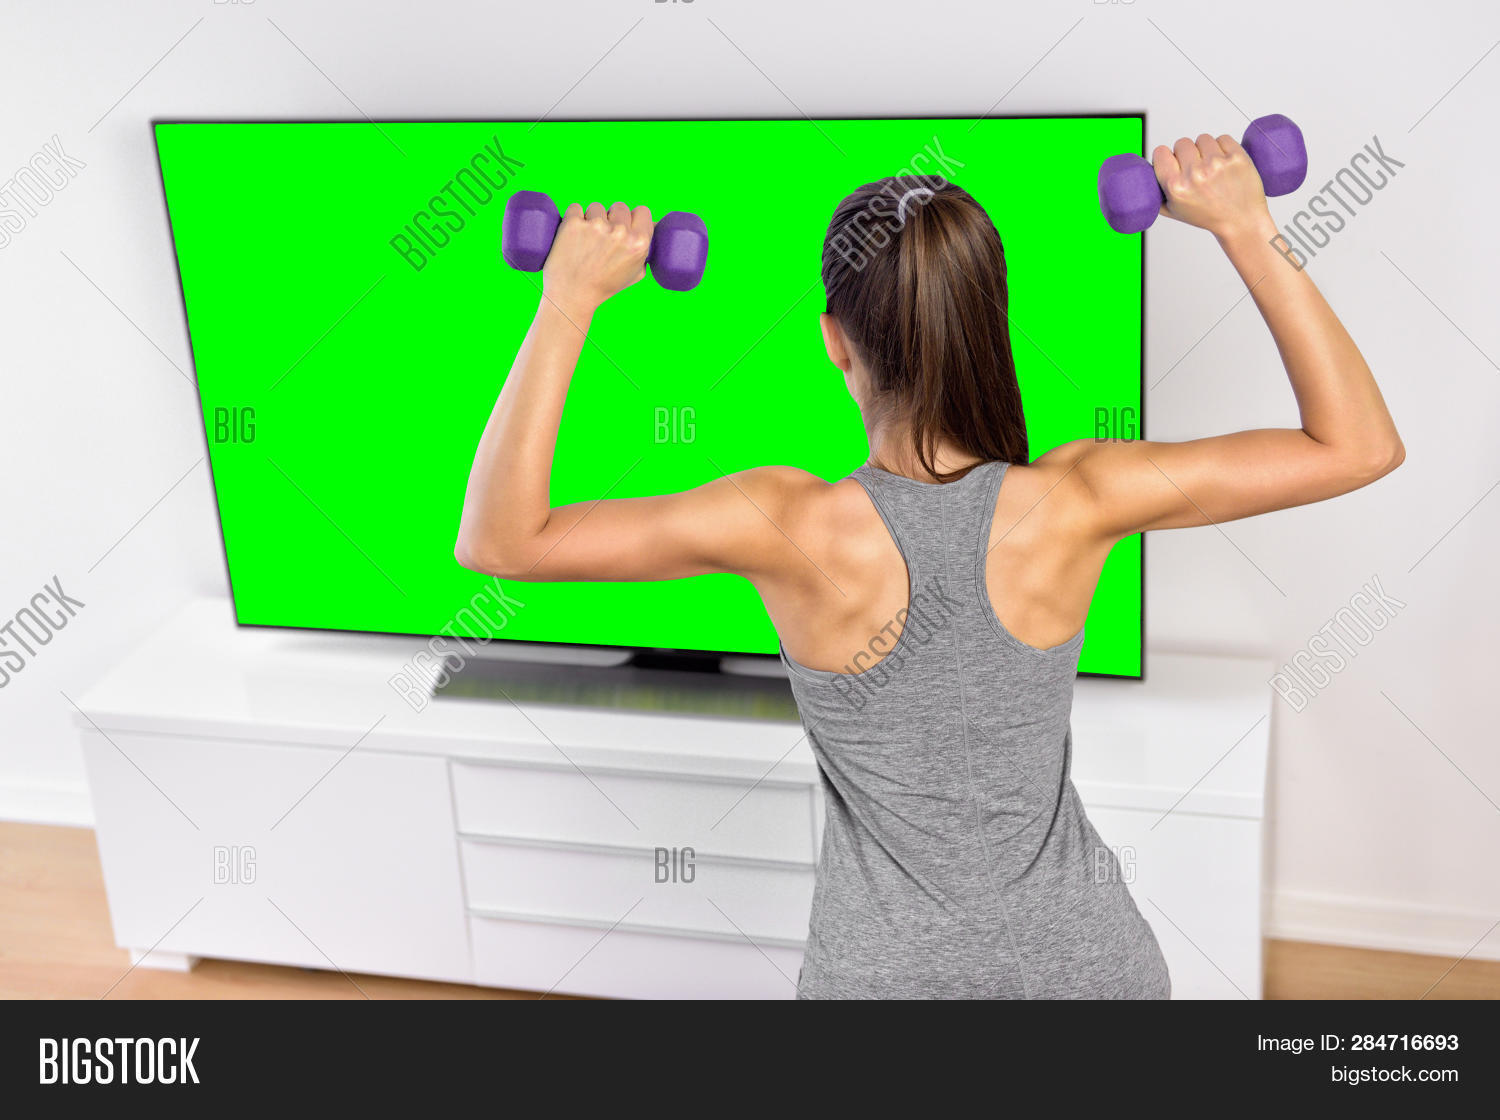 Home Workout Tv Image & Photo (Free Trial) | Bigstock